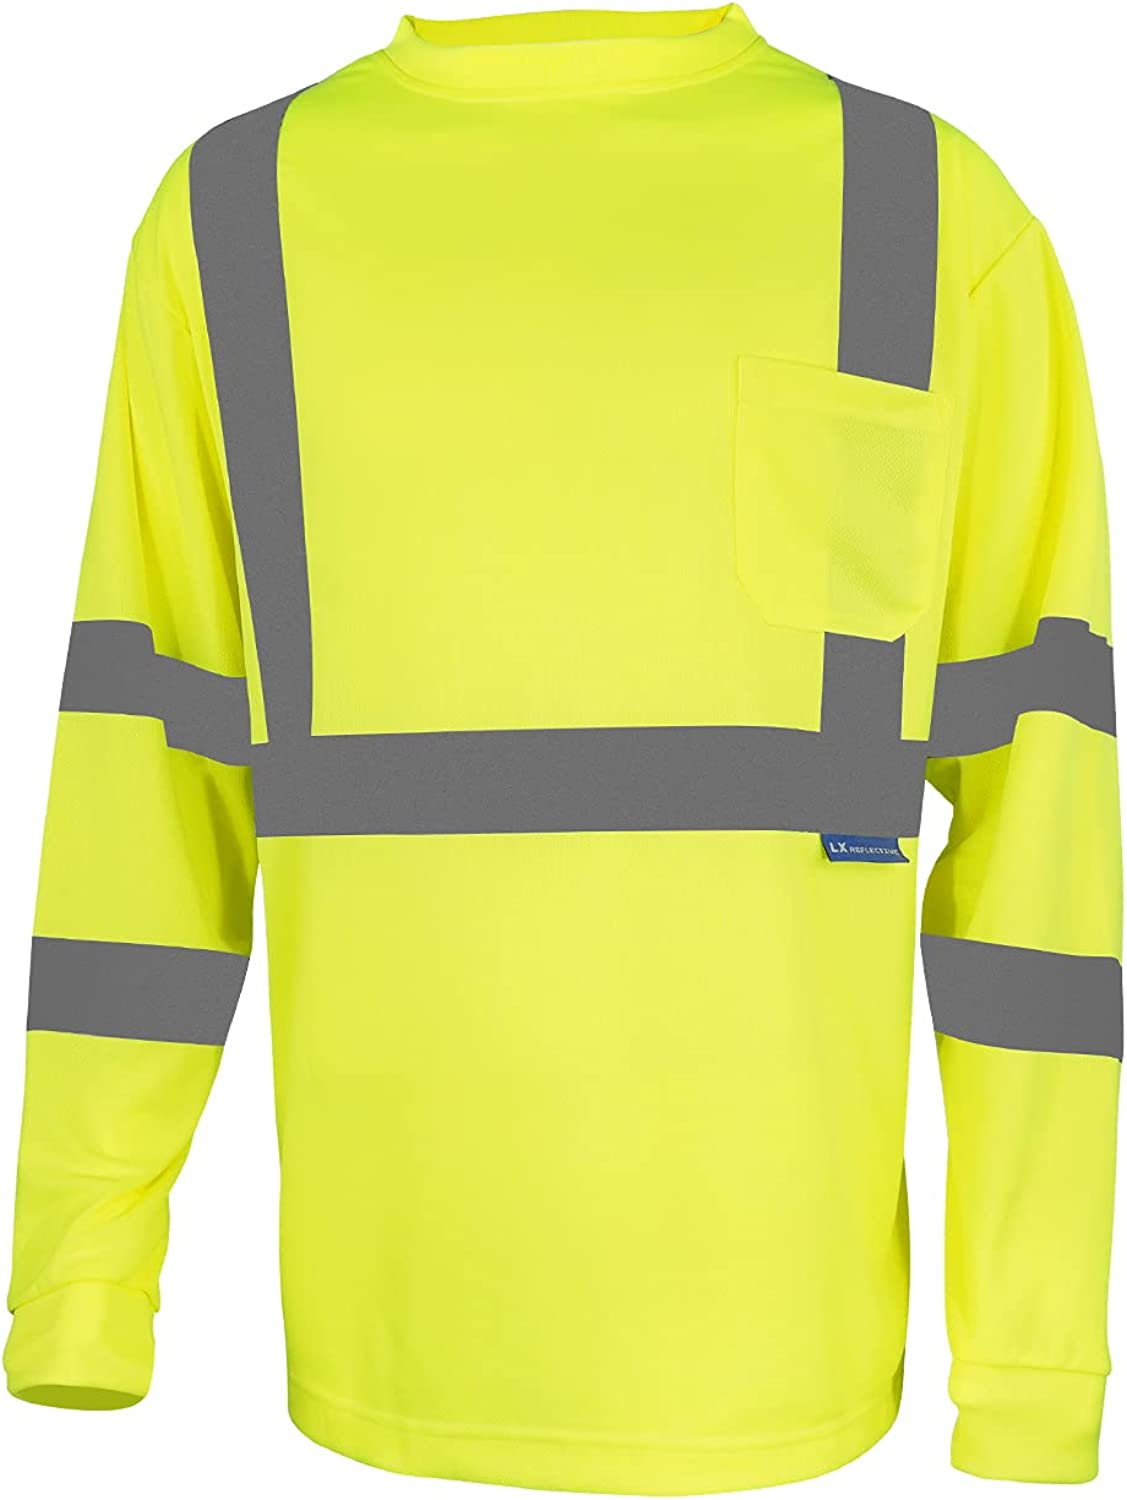 LX Reflective High Inventory cleanup selling sale Visibility Safety Long Excellence Sle Shirt T